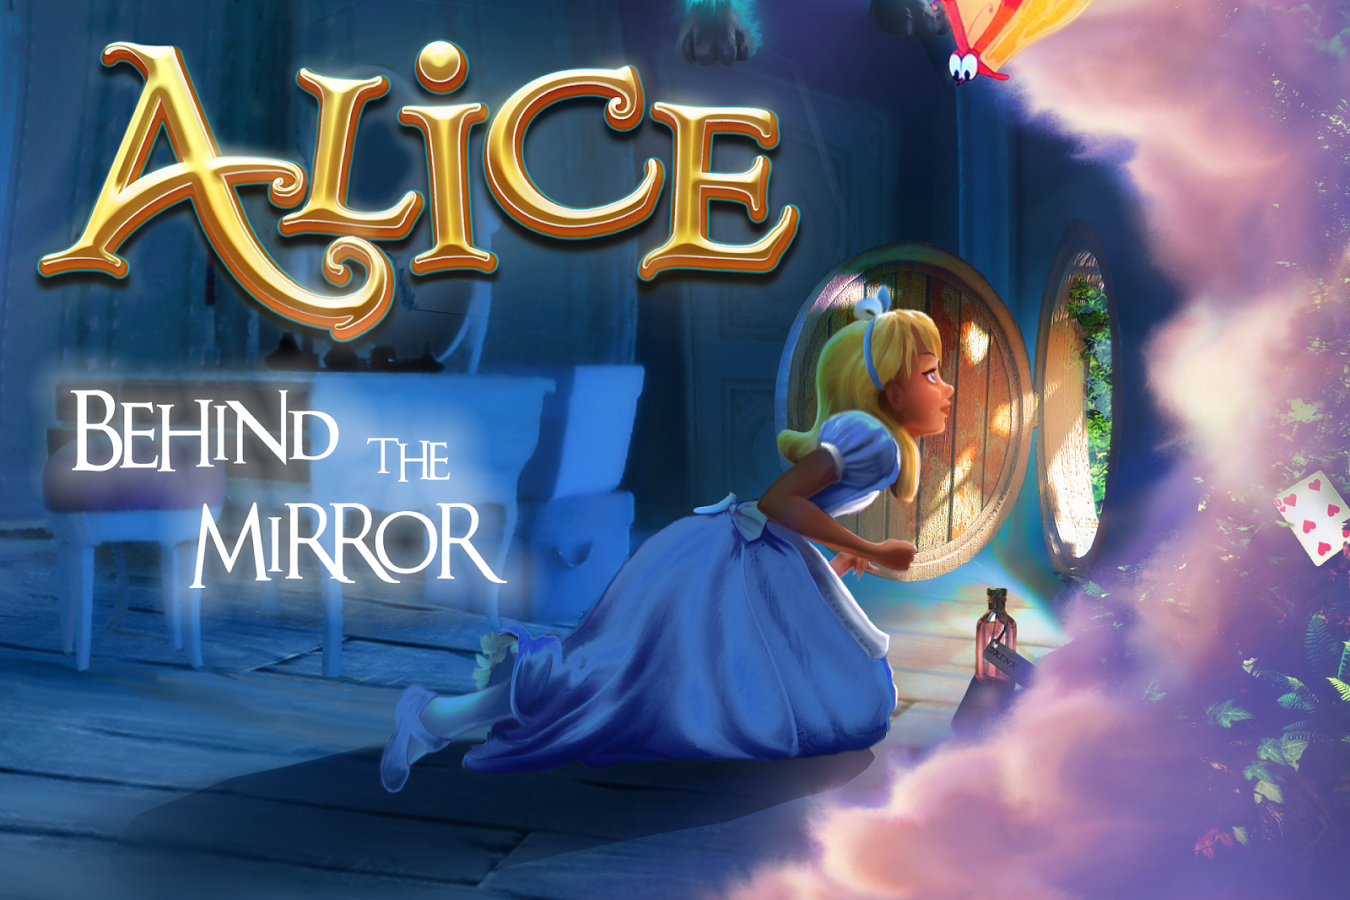 Alice - Behind the Mirror v1.0.34 APK+DATA